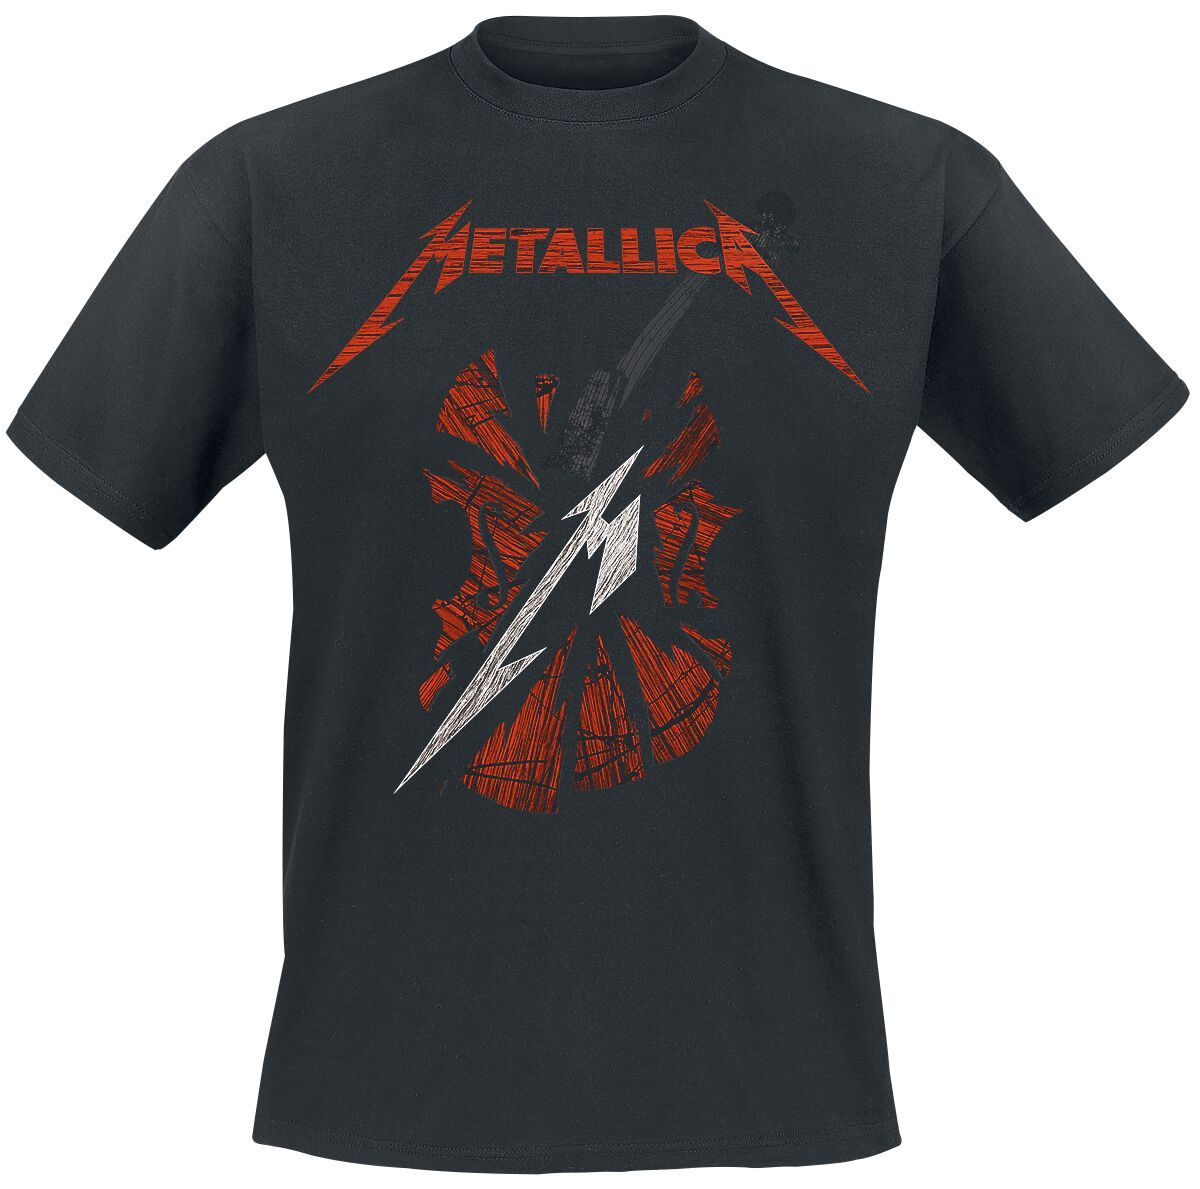 METALLICA S&M2 - Scratch Cello T-Shirt.jpg